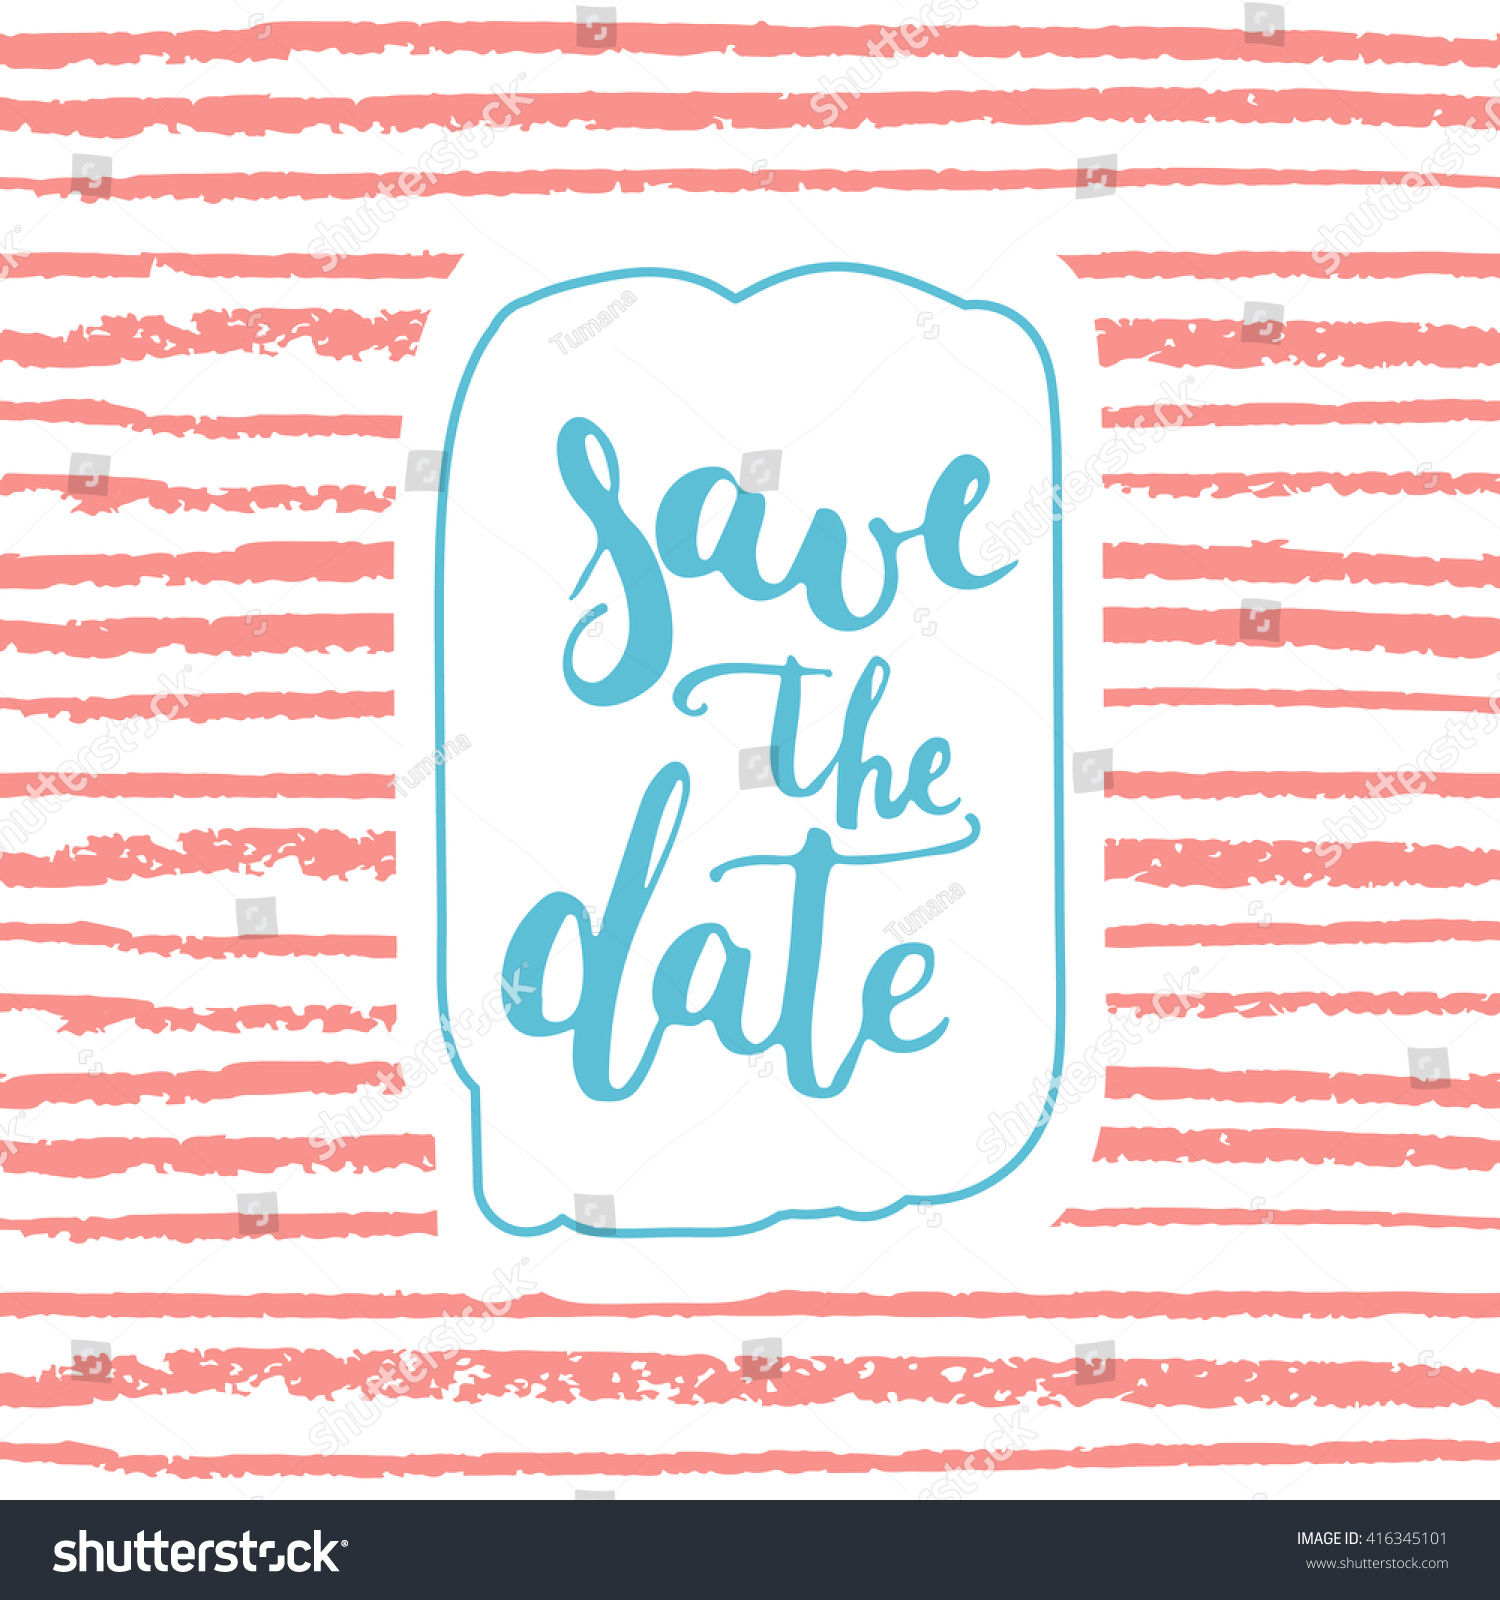 Save Date Card Template On Striped Stock Illustration 416345101 ...